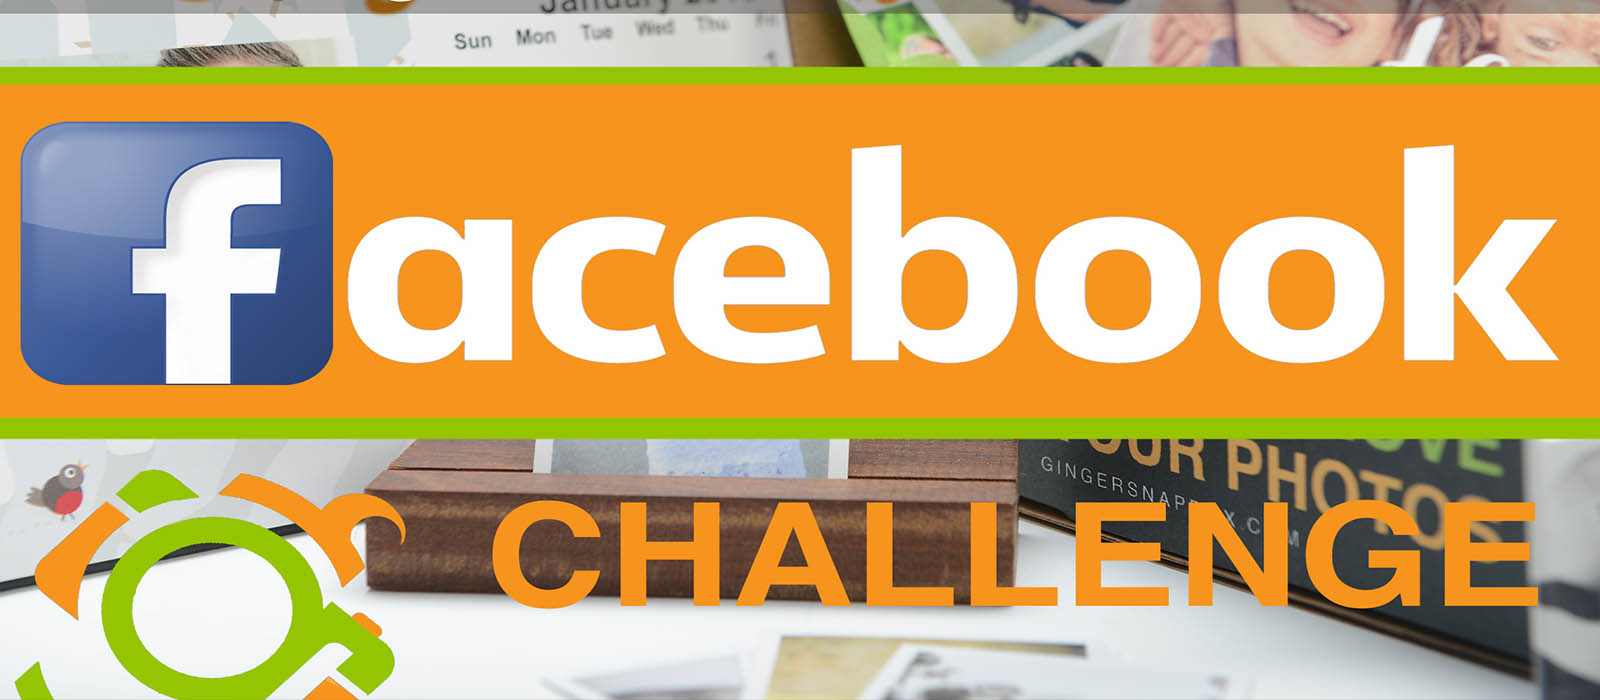 GingerSnapCrate Facebook Challenge